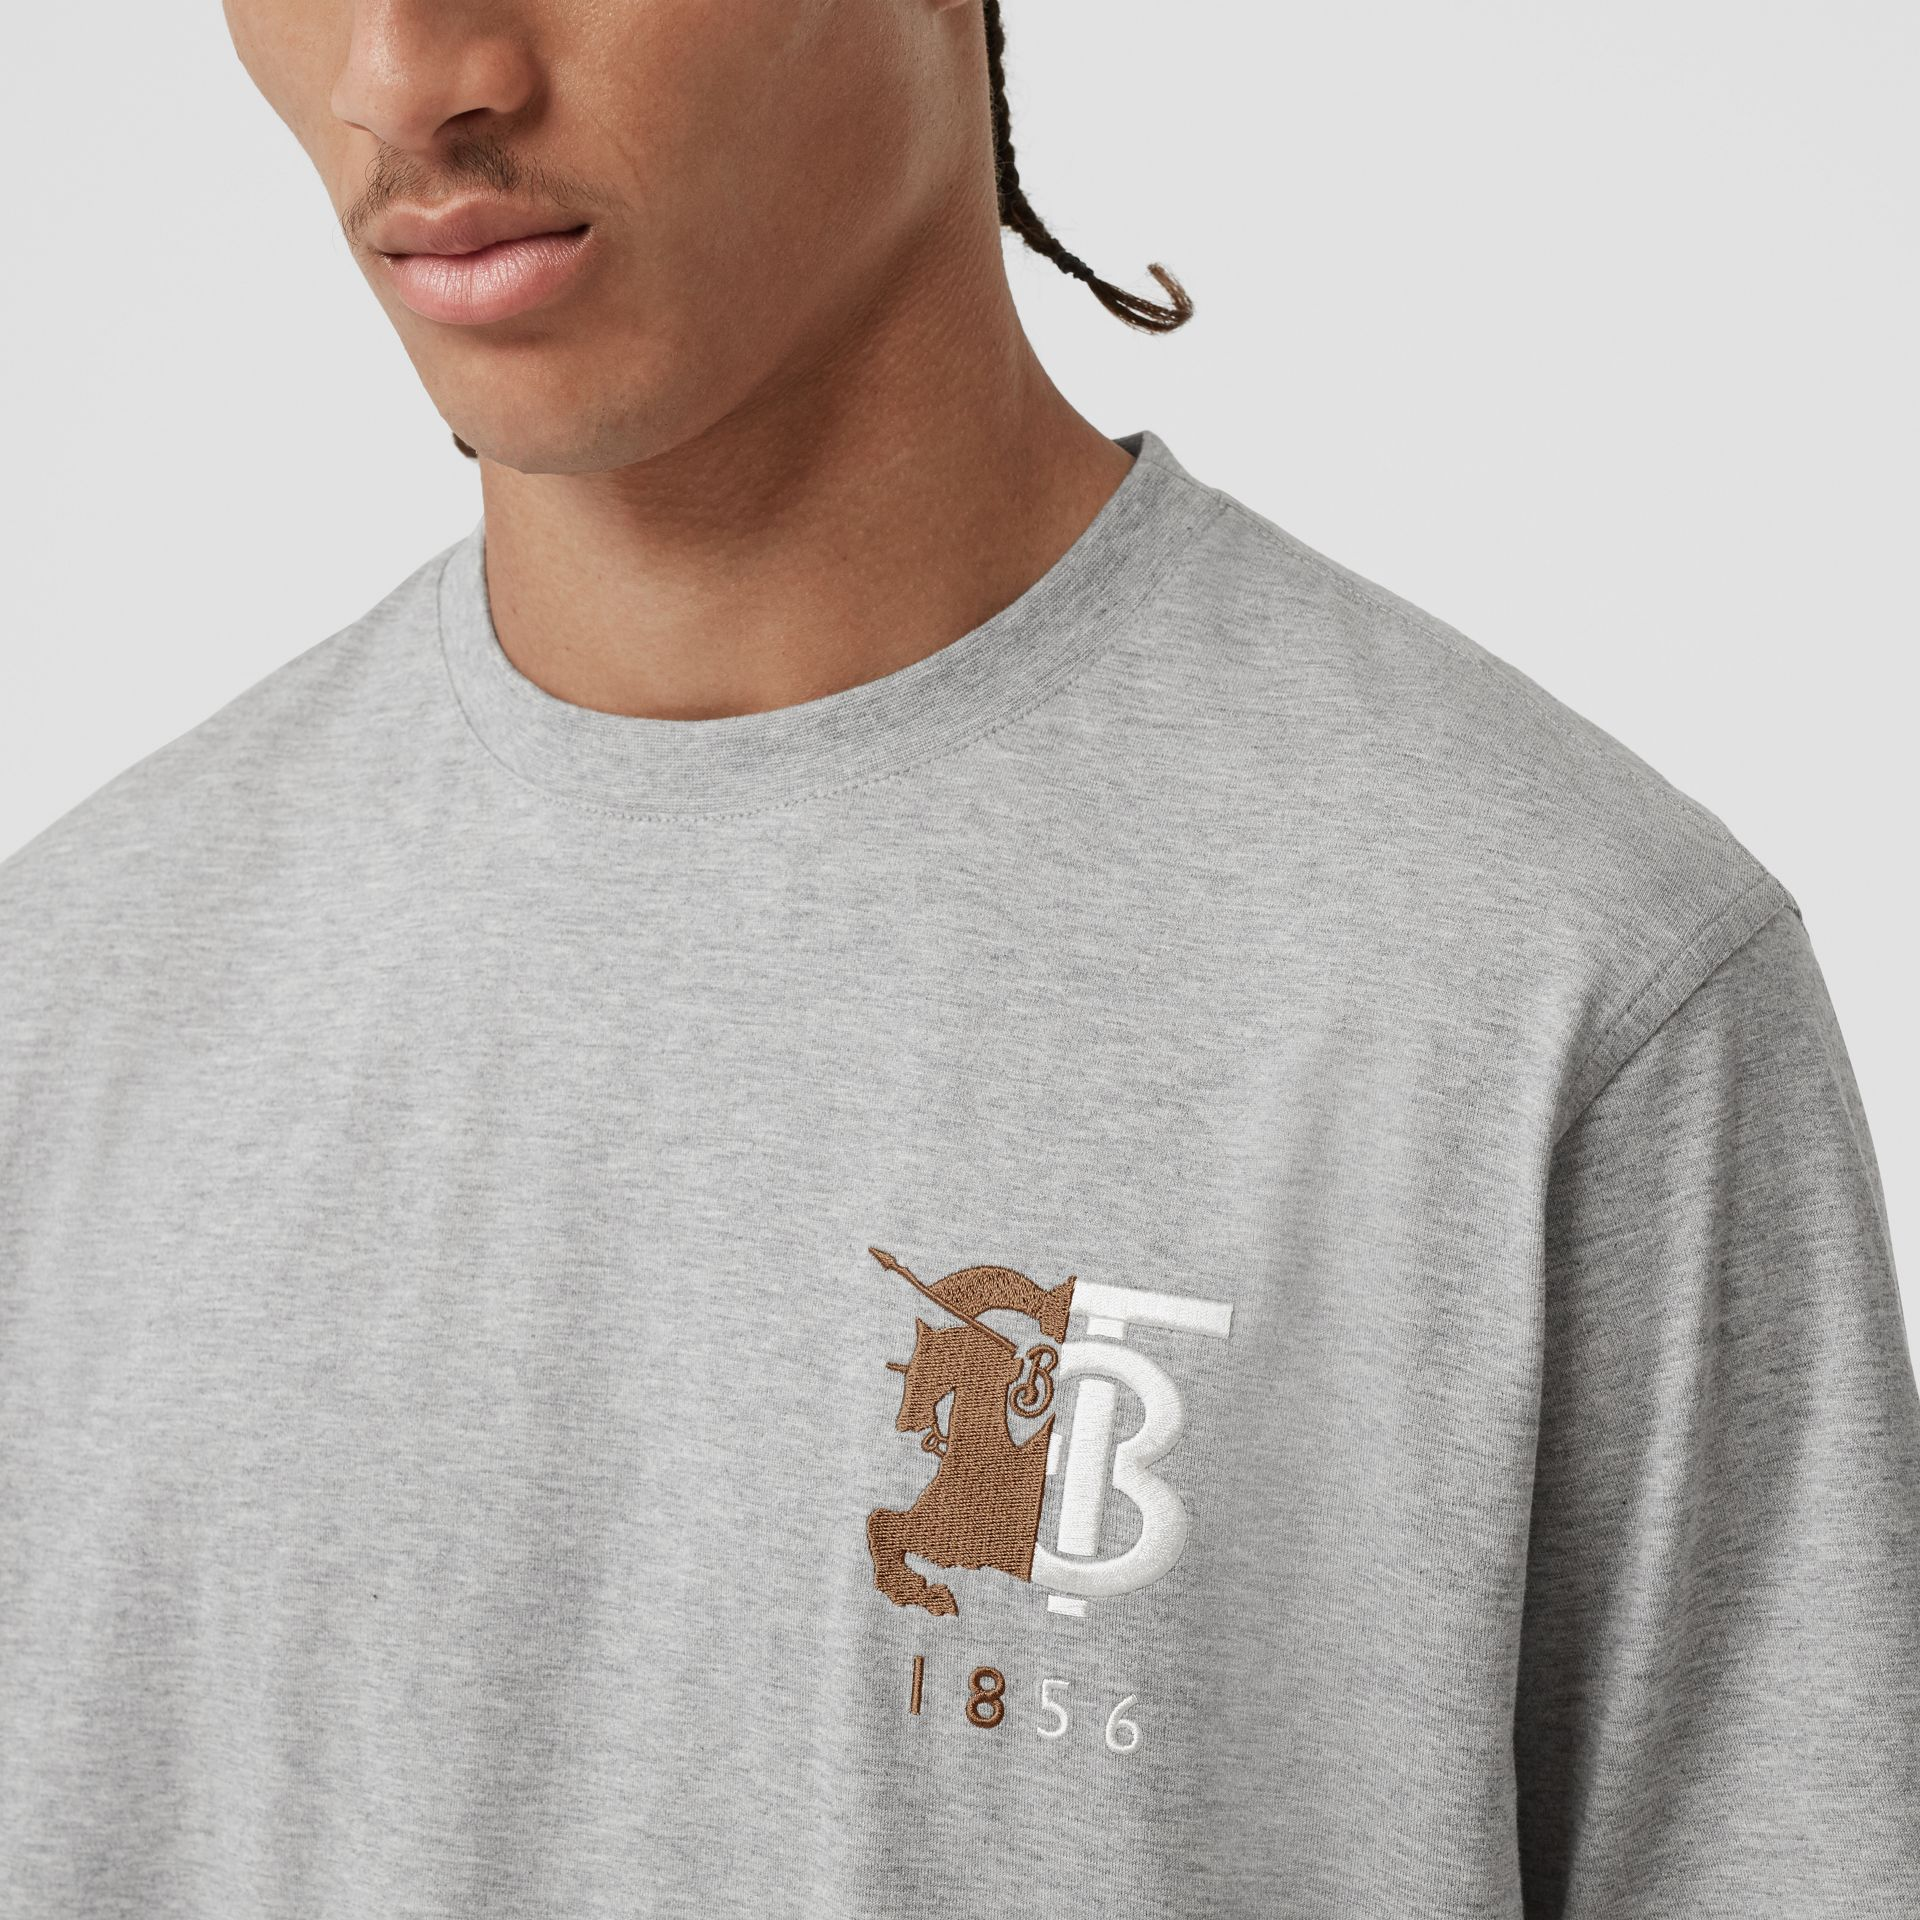 Contrast Logo Graphic Cotton T-shirt in Pale Grey Melange - Men | Burberry - gallery image 1